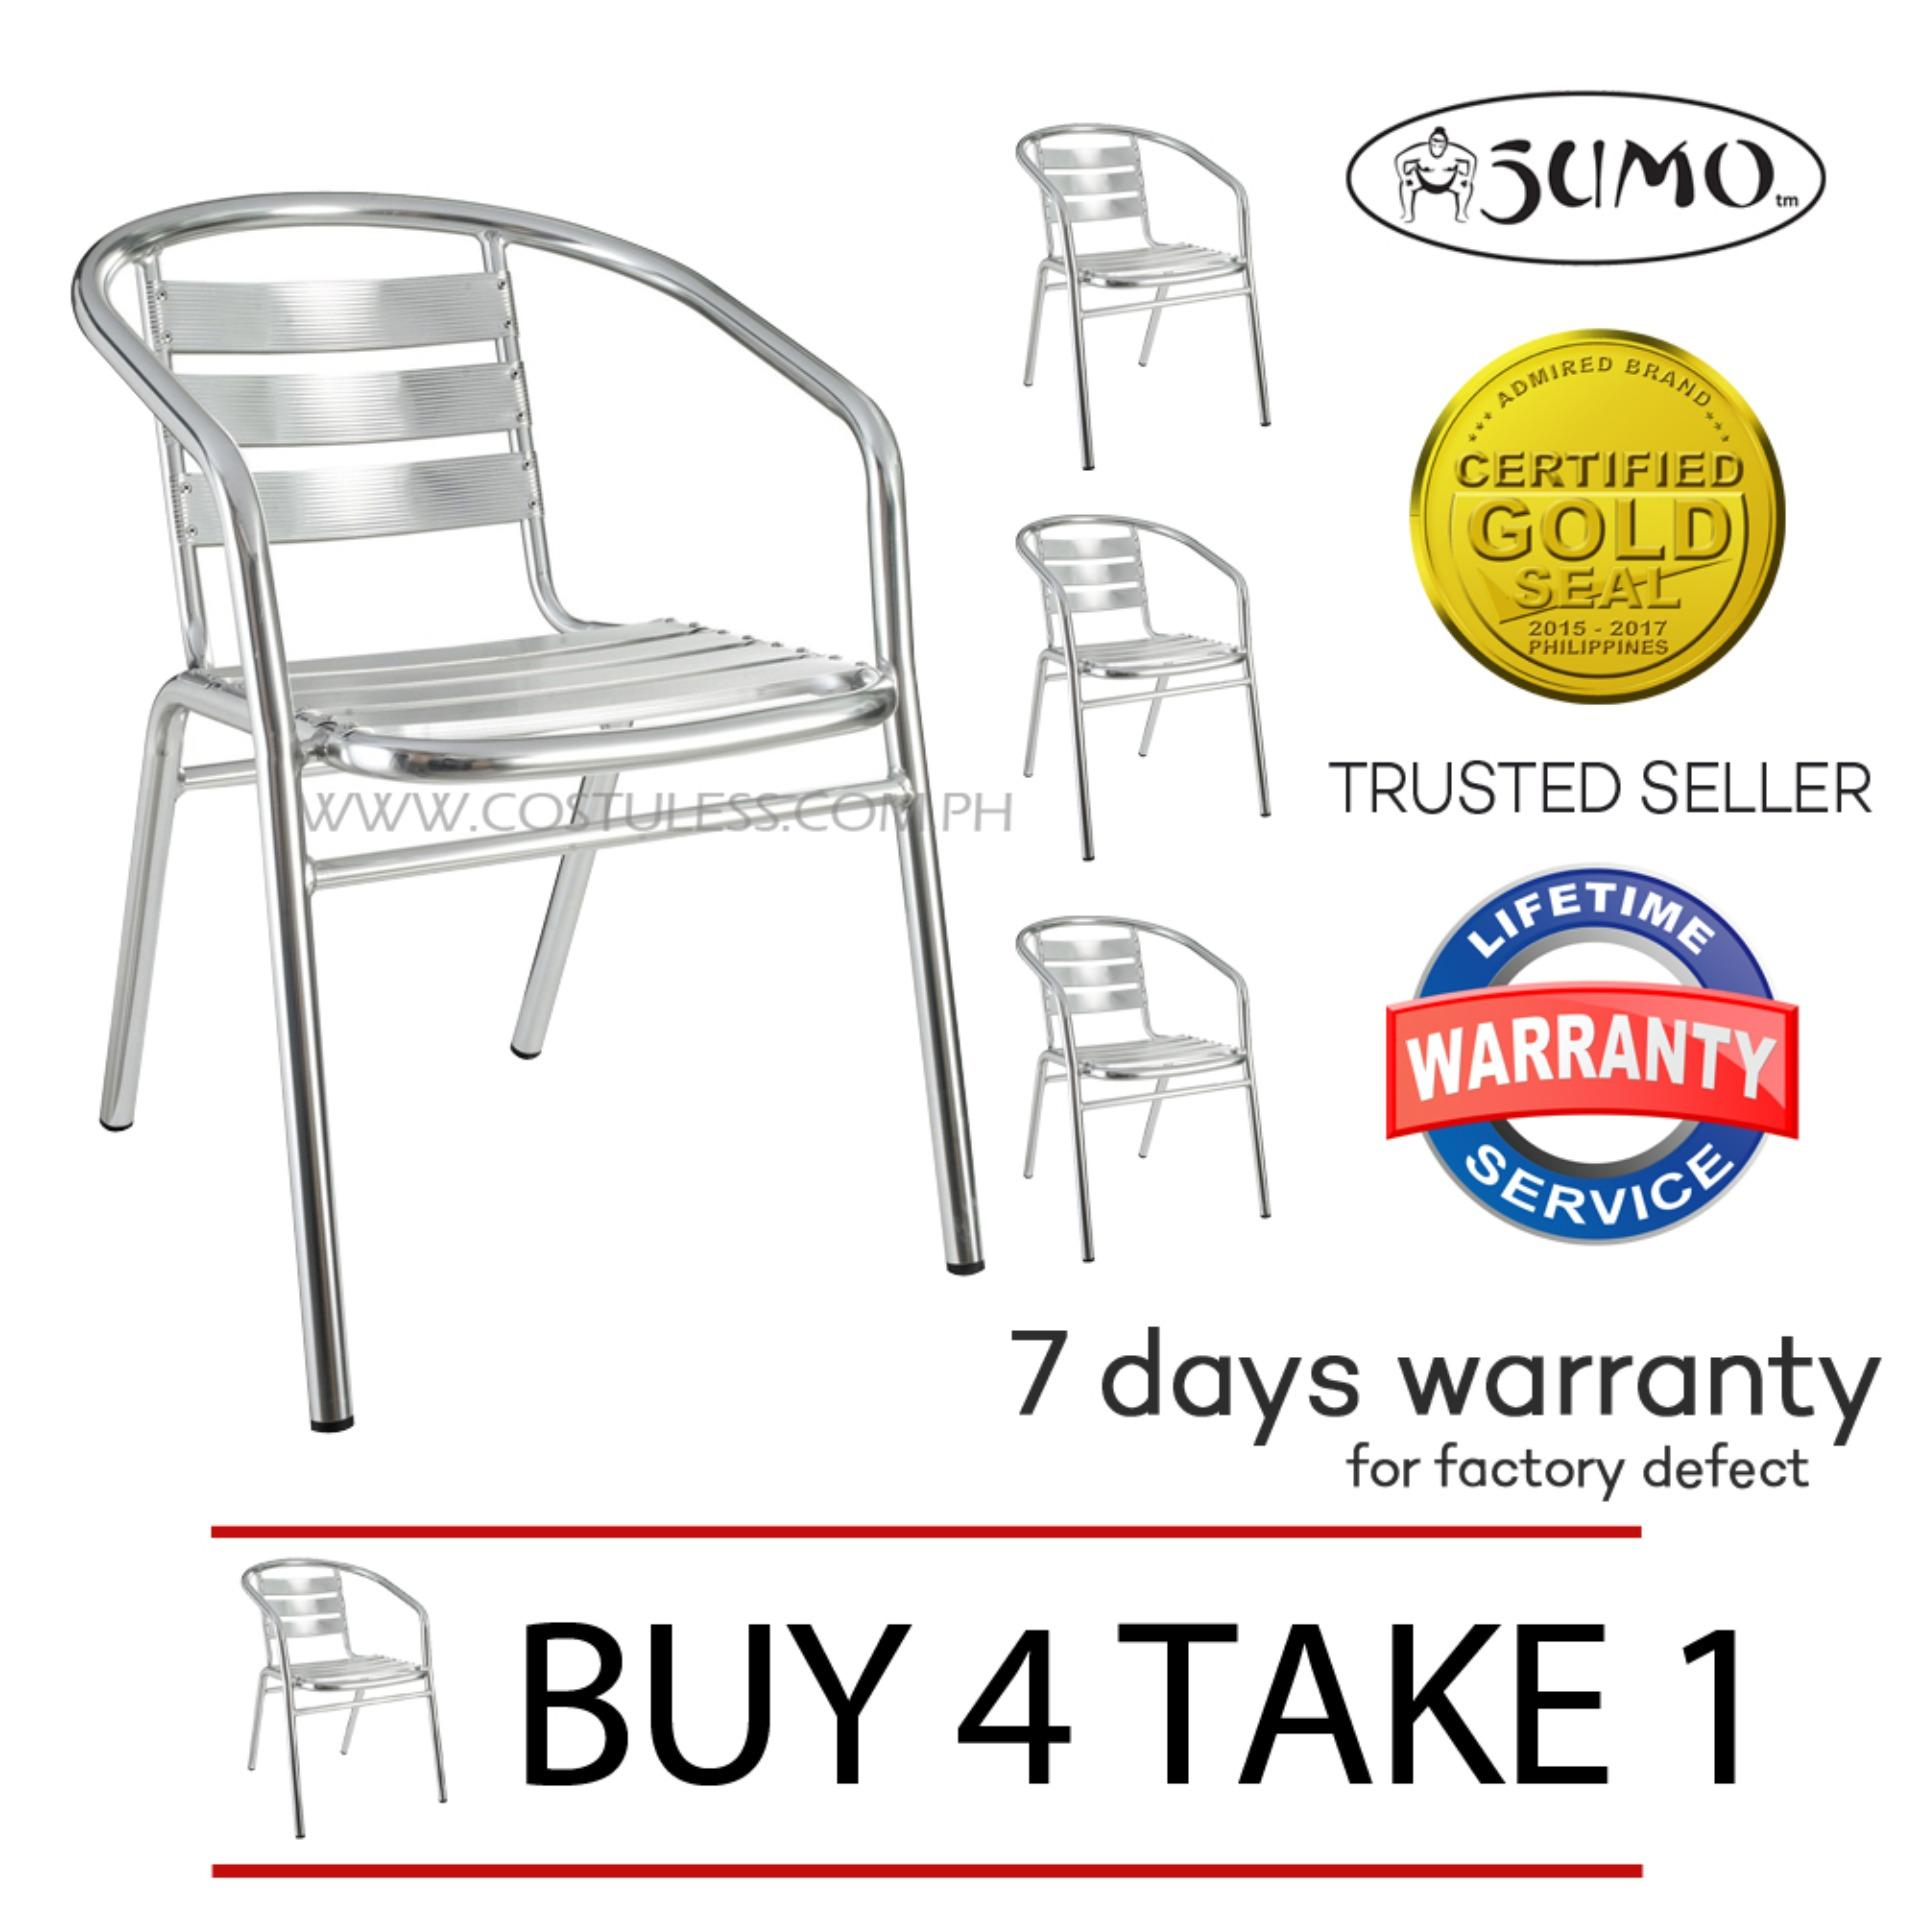 Sumo ACA-103DLX Outdoor Chair Furniture (Silver) Buy 4 Take 1